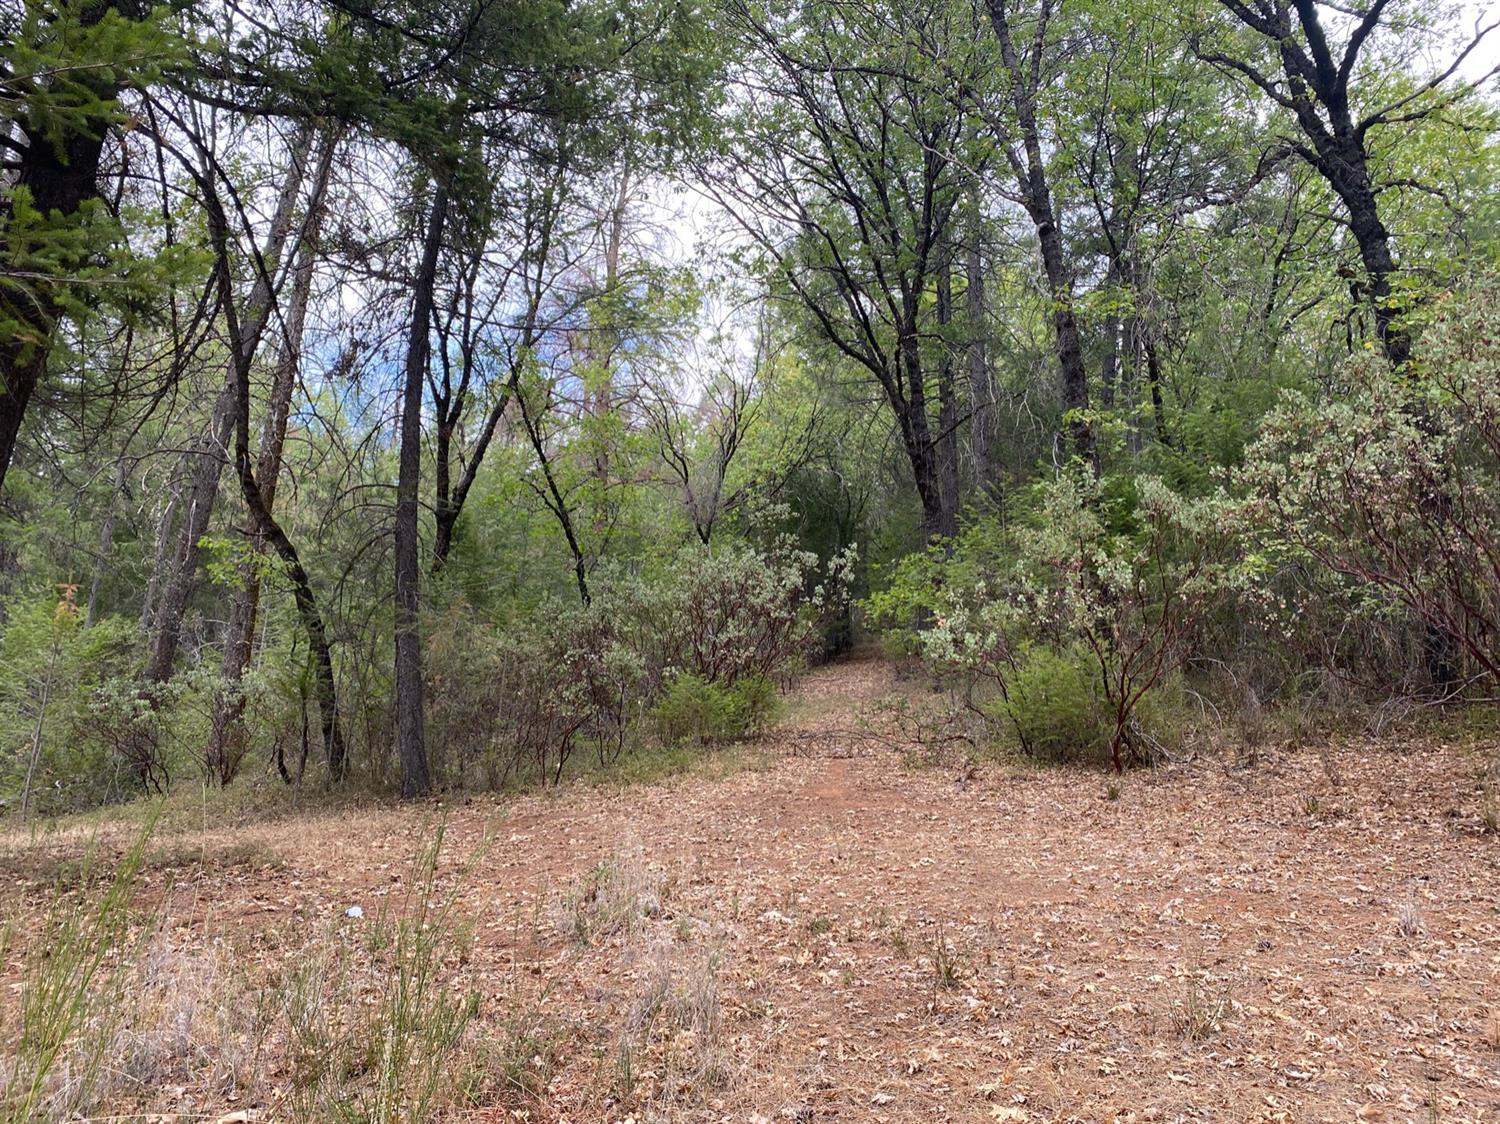 2.4 acres in Kelsey with deeded access. Your opportunity to own a piece of land in El Dorado County!